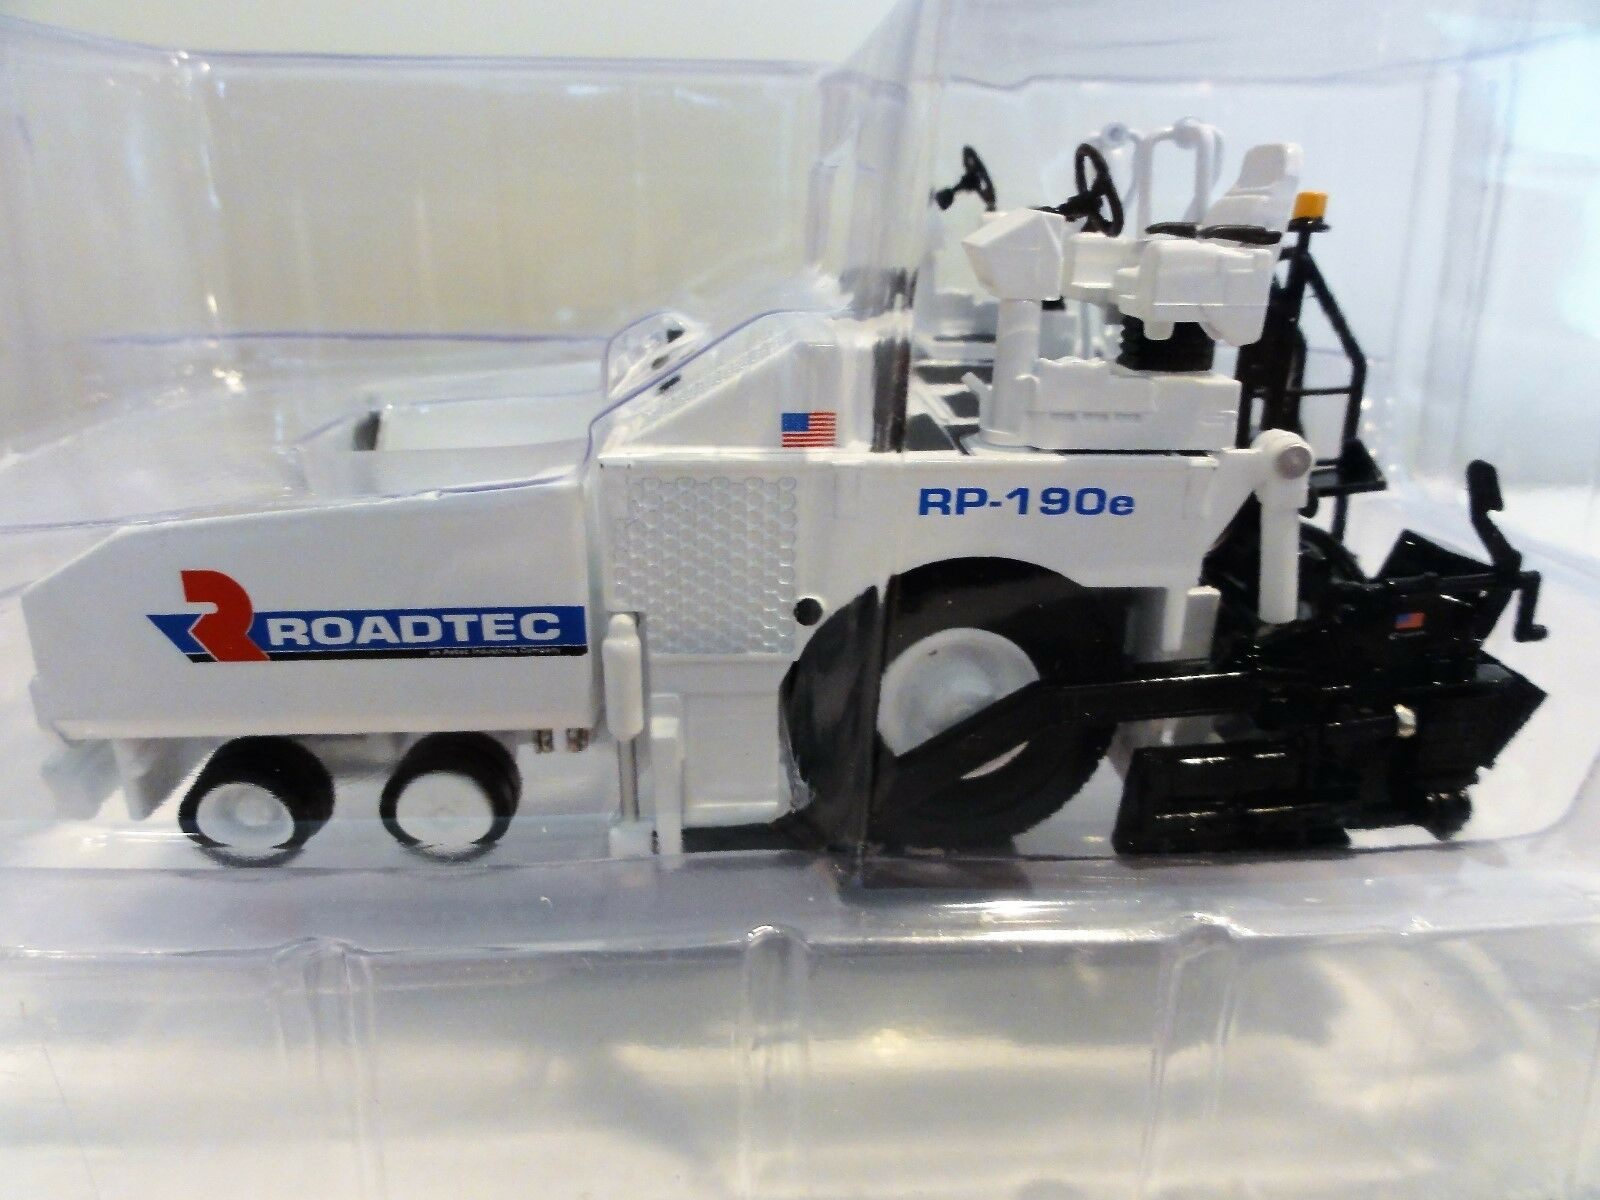 ROADTEC First Gear ROADTEC RP-190e roue paver - 1 50 -  NEW IN BOX